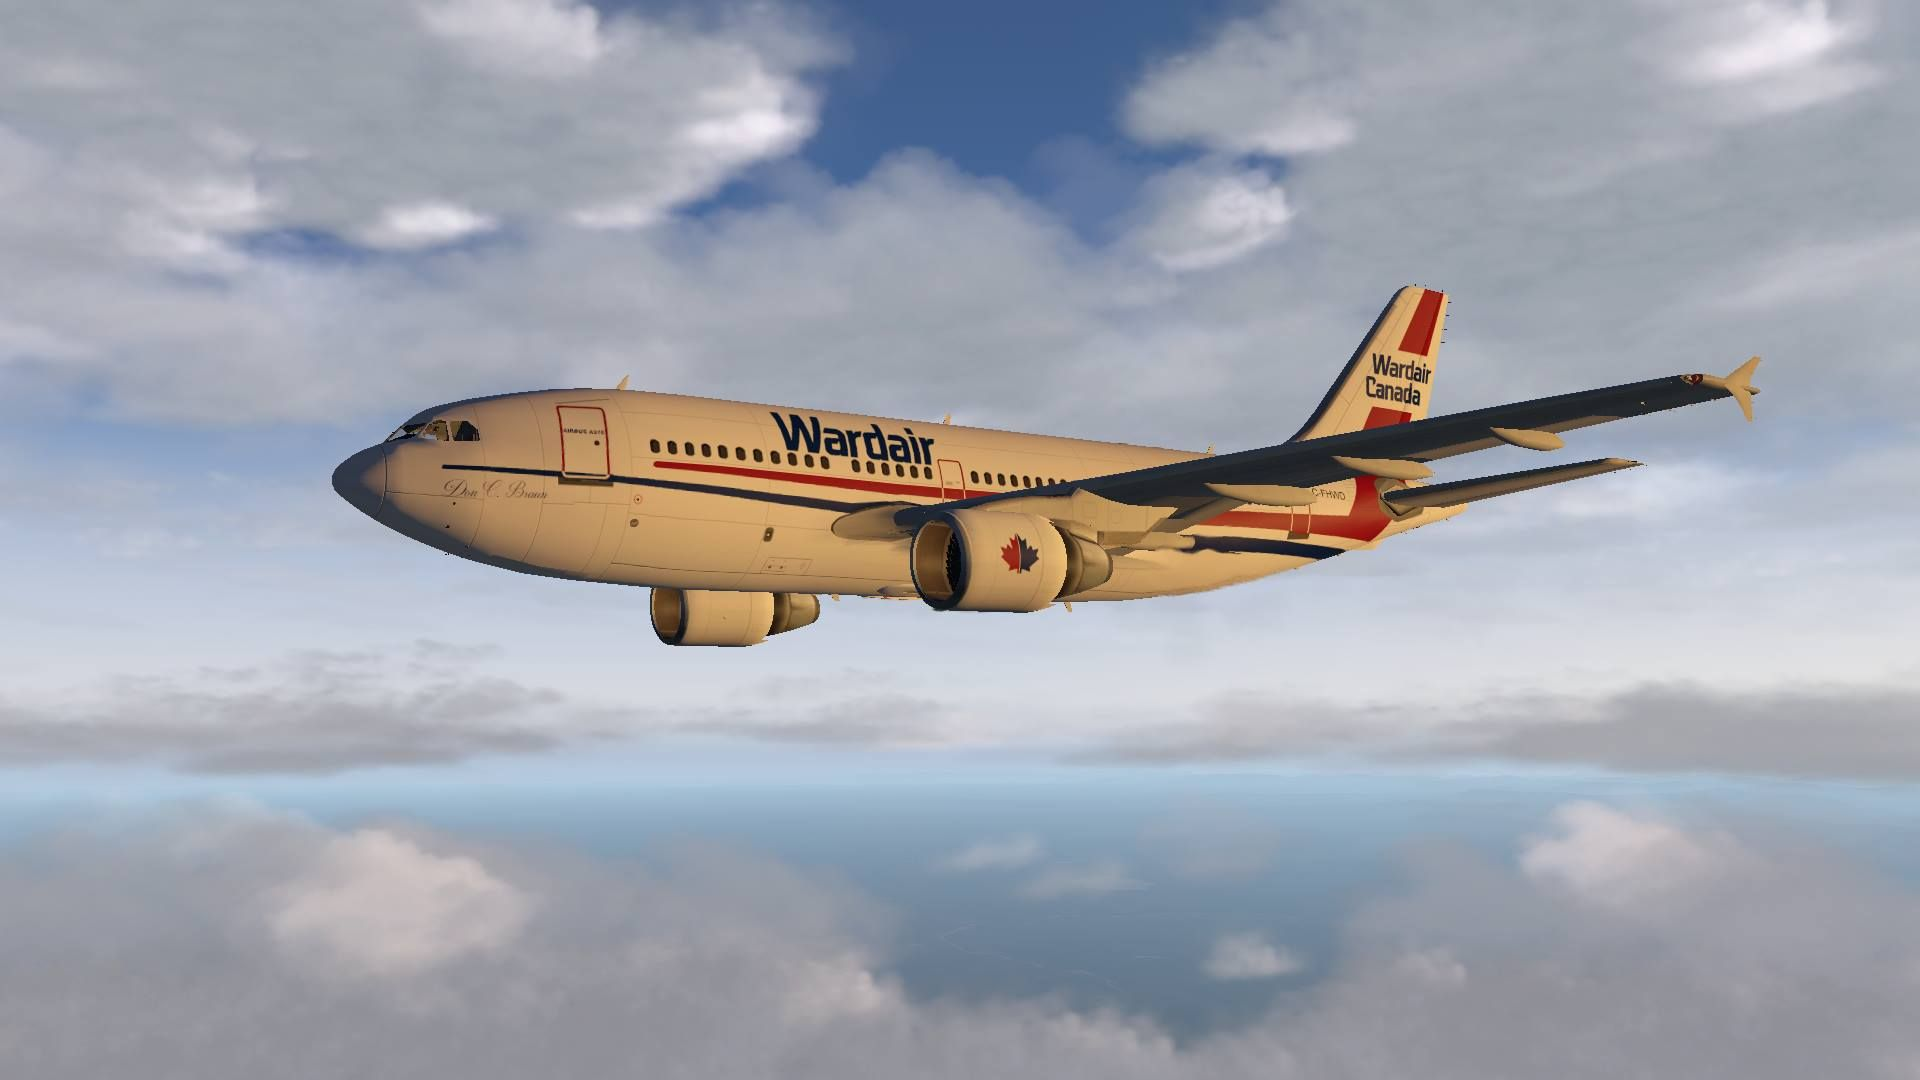 Wardair Canada Airbus A310 livery painted by me for the A310